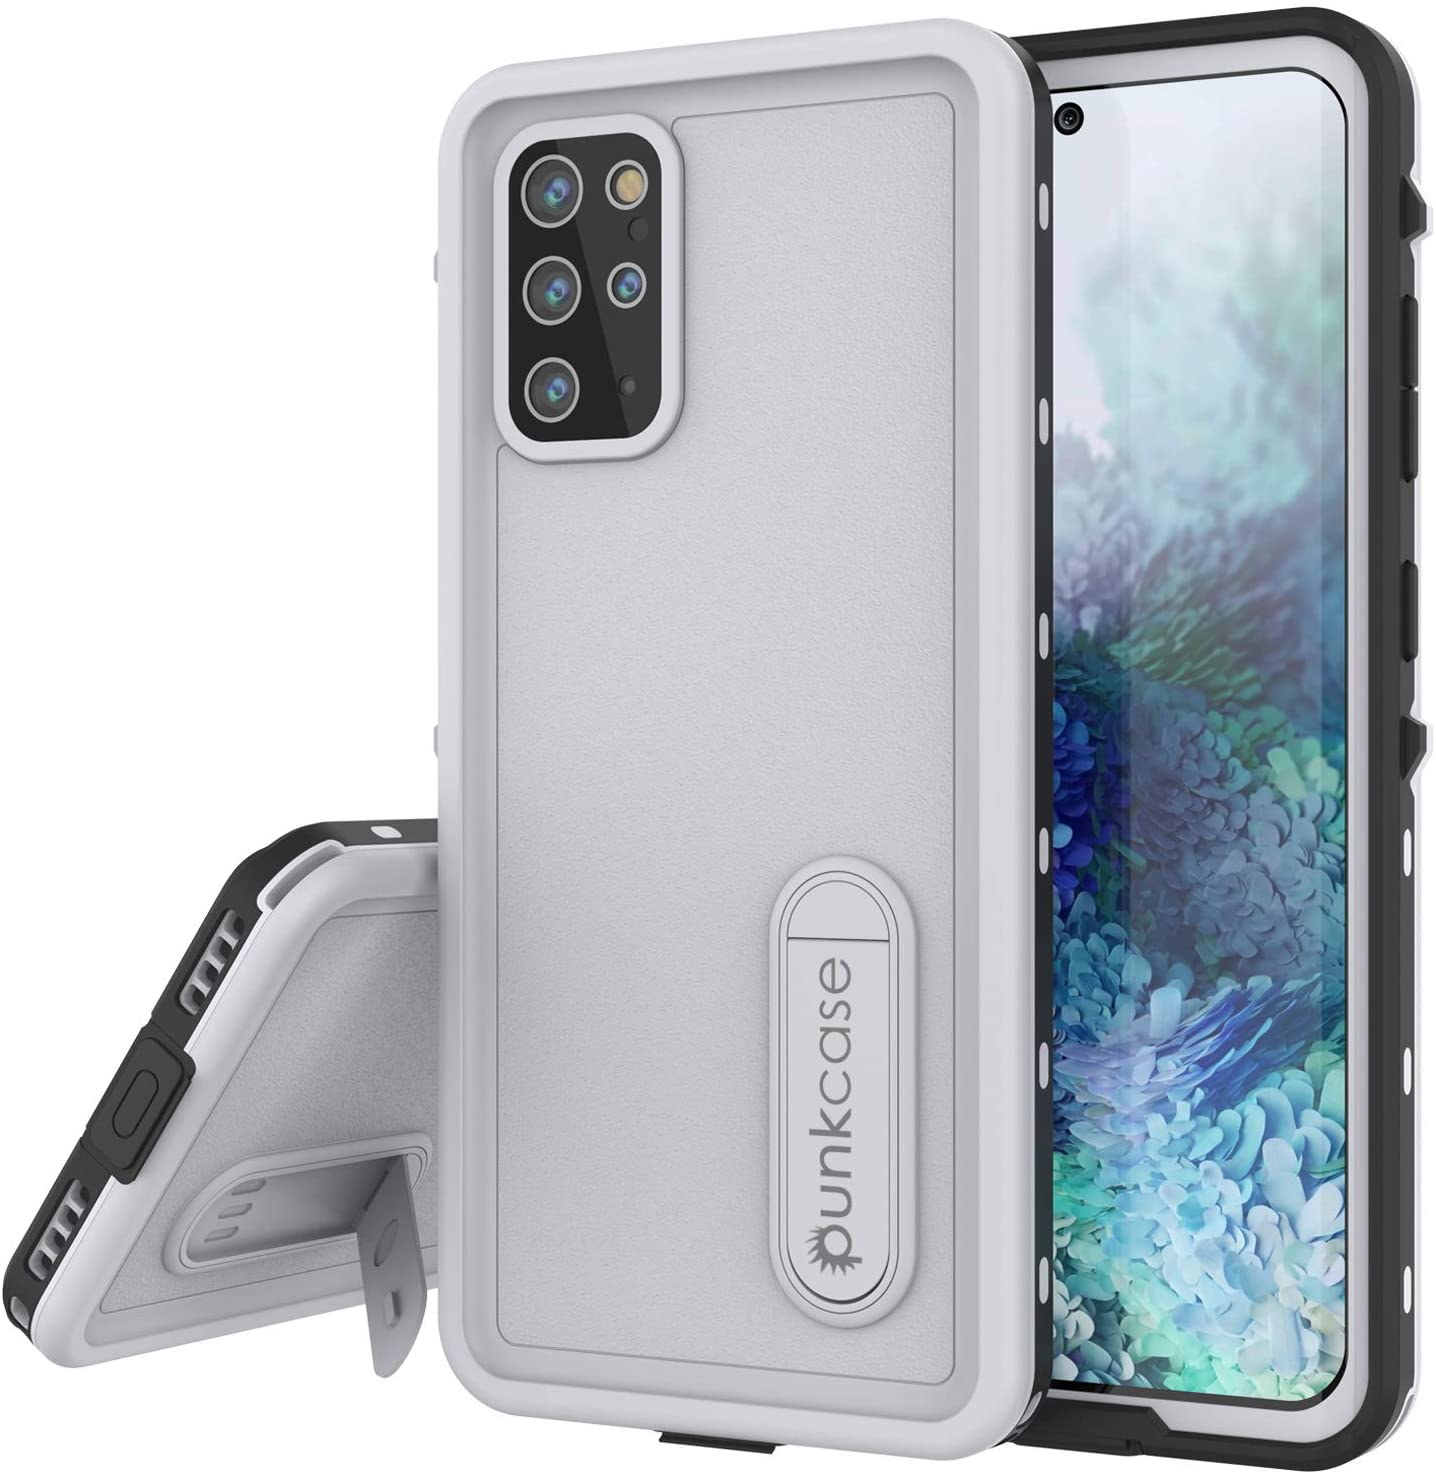 Galaxy S20+ Plus Waterproof Case, Punkcase [KickStud Series] Armor Cover [White]